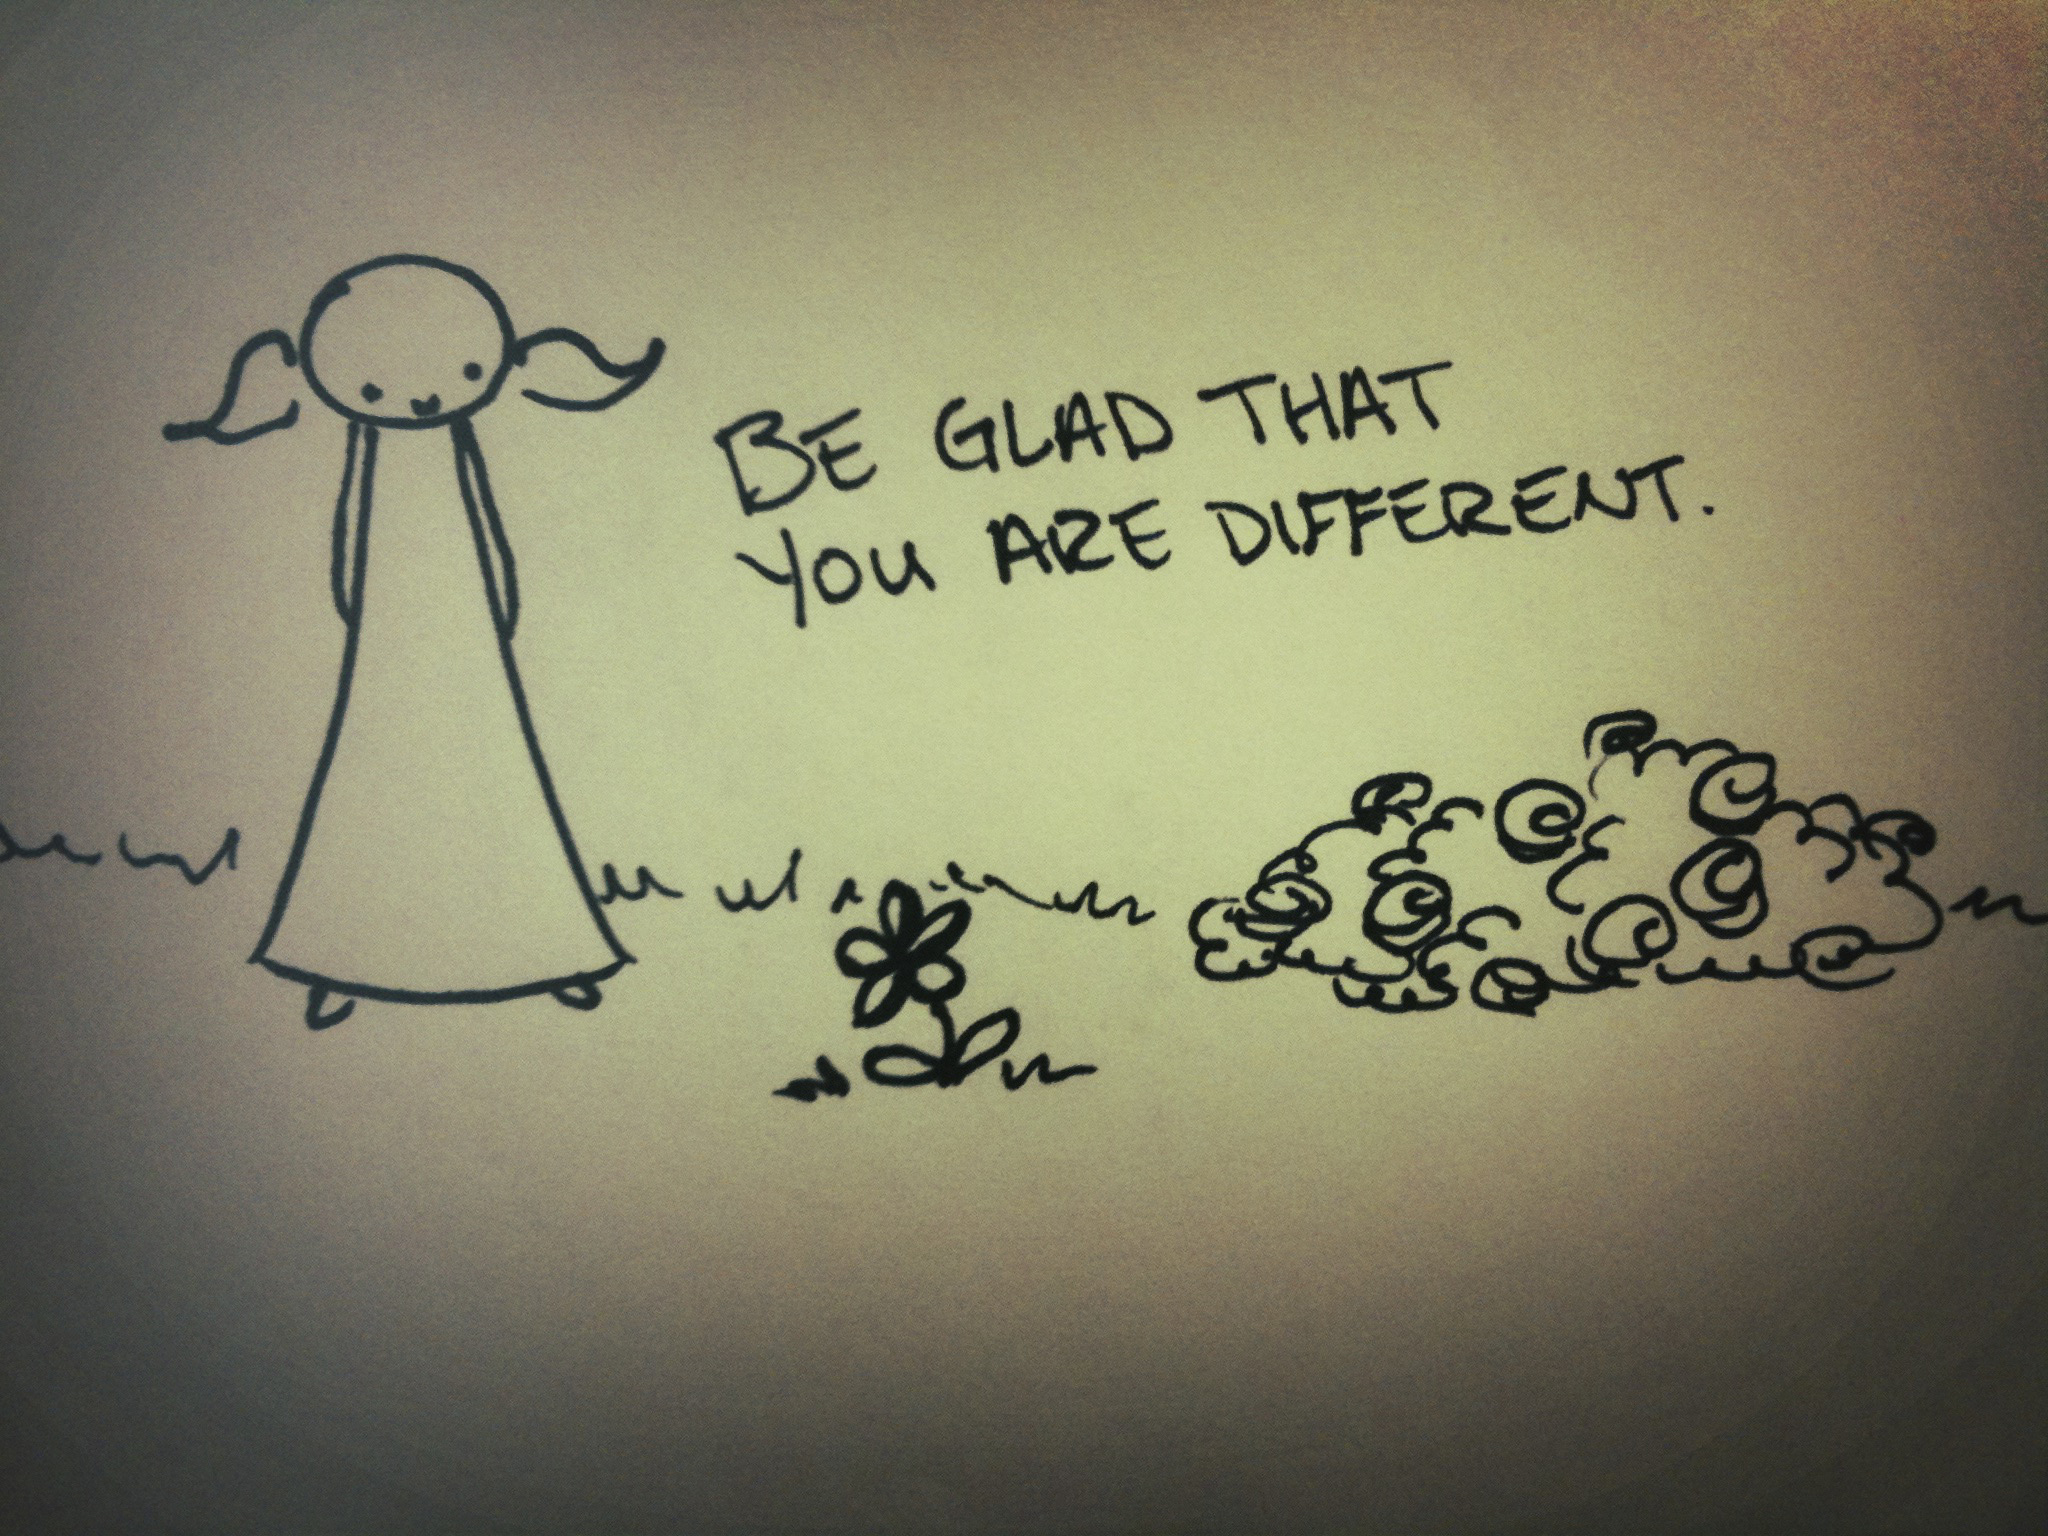 be glad that you are different.